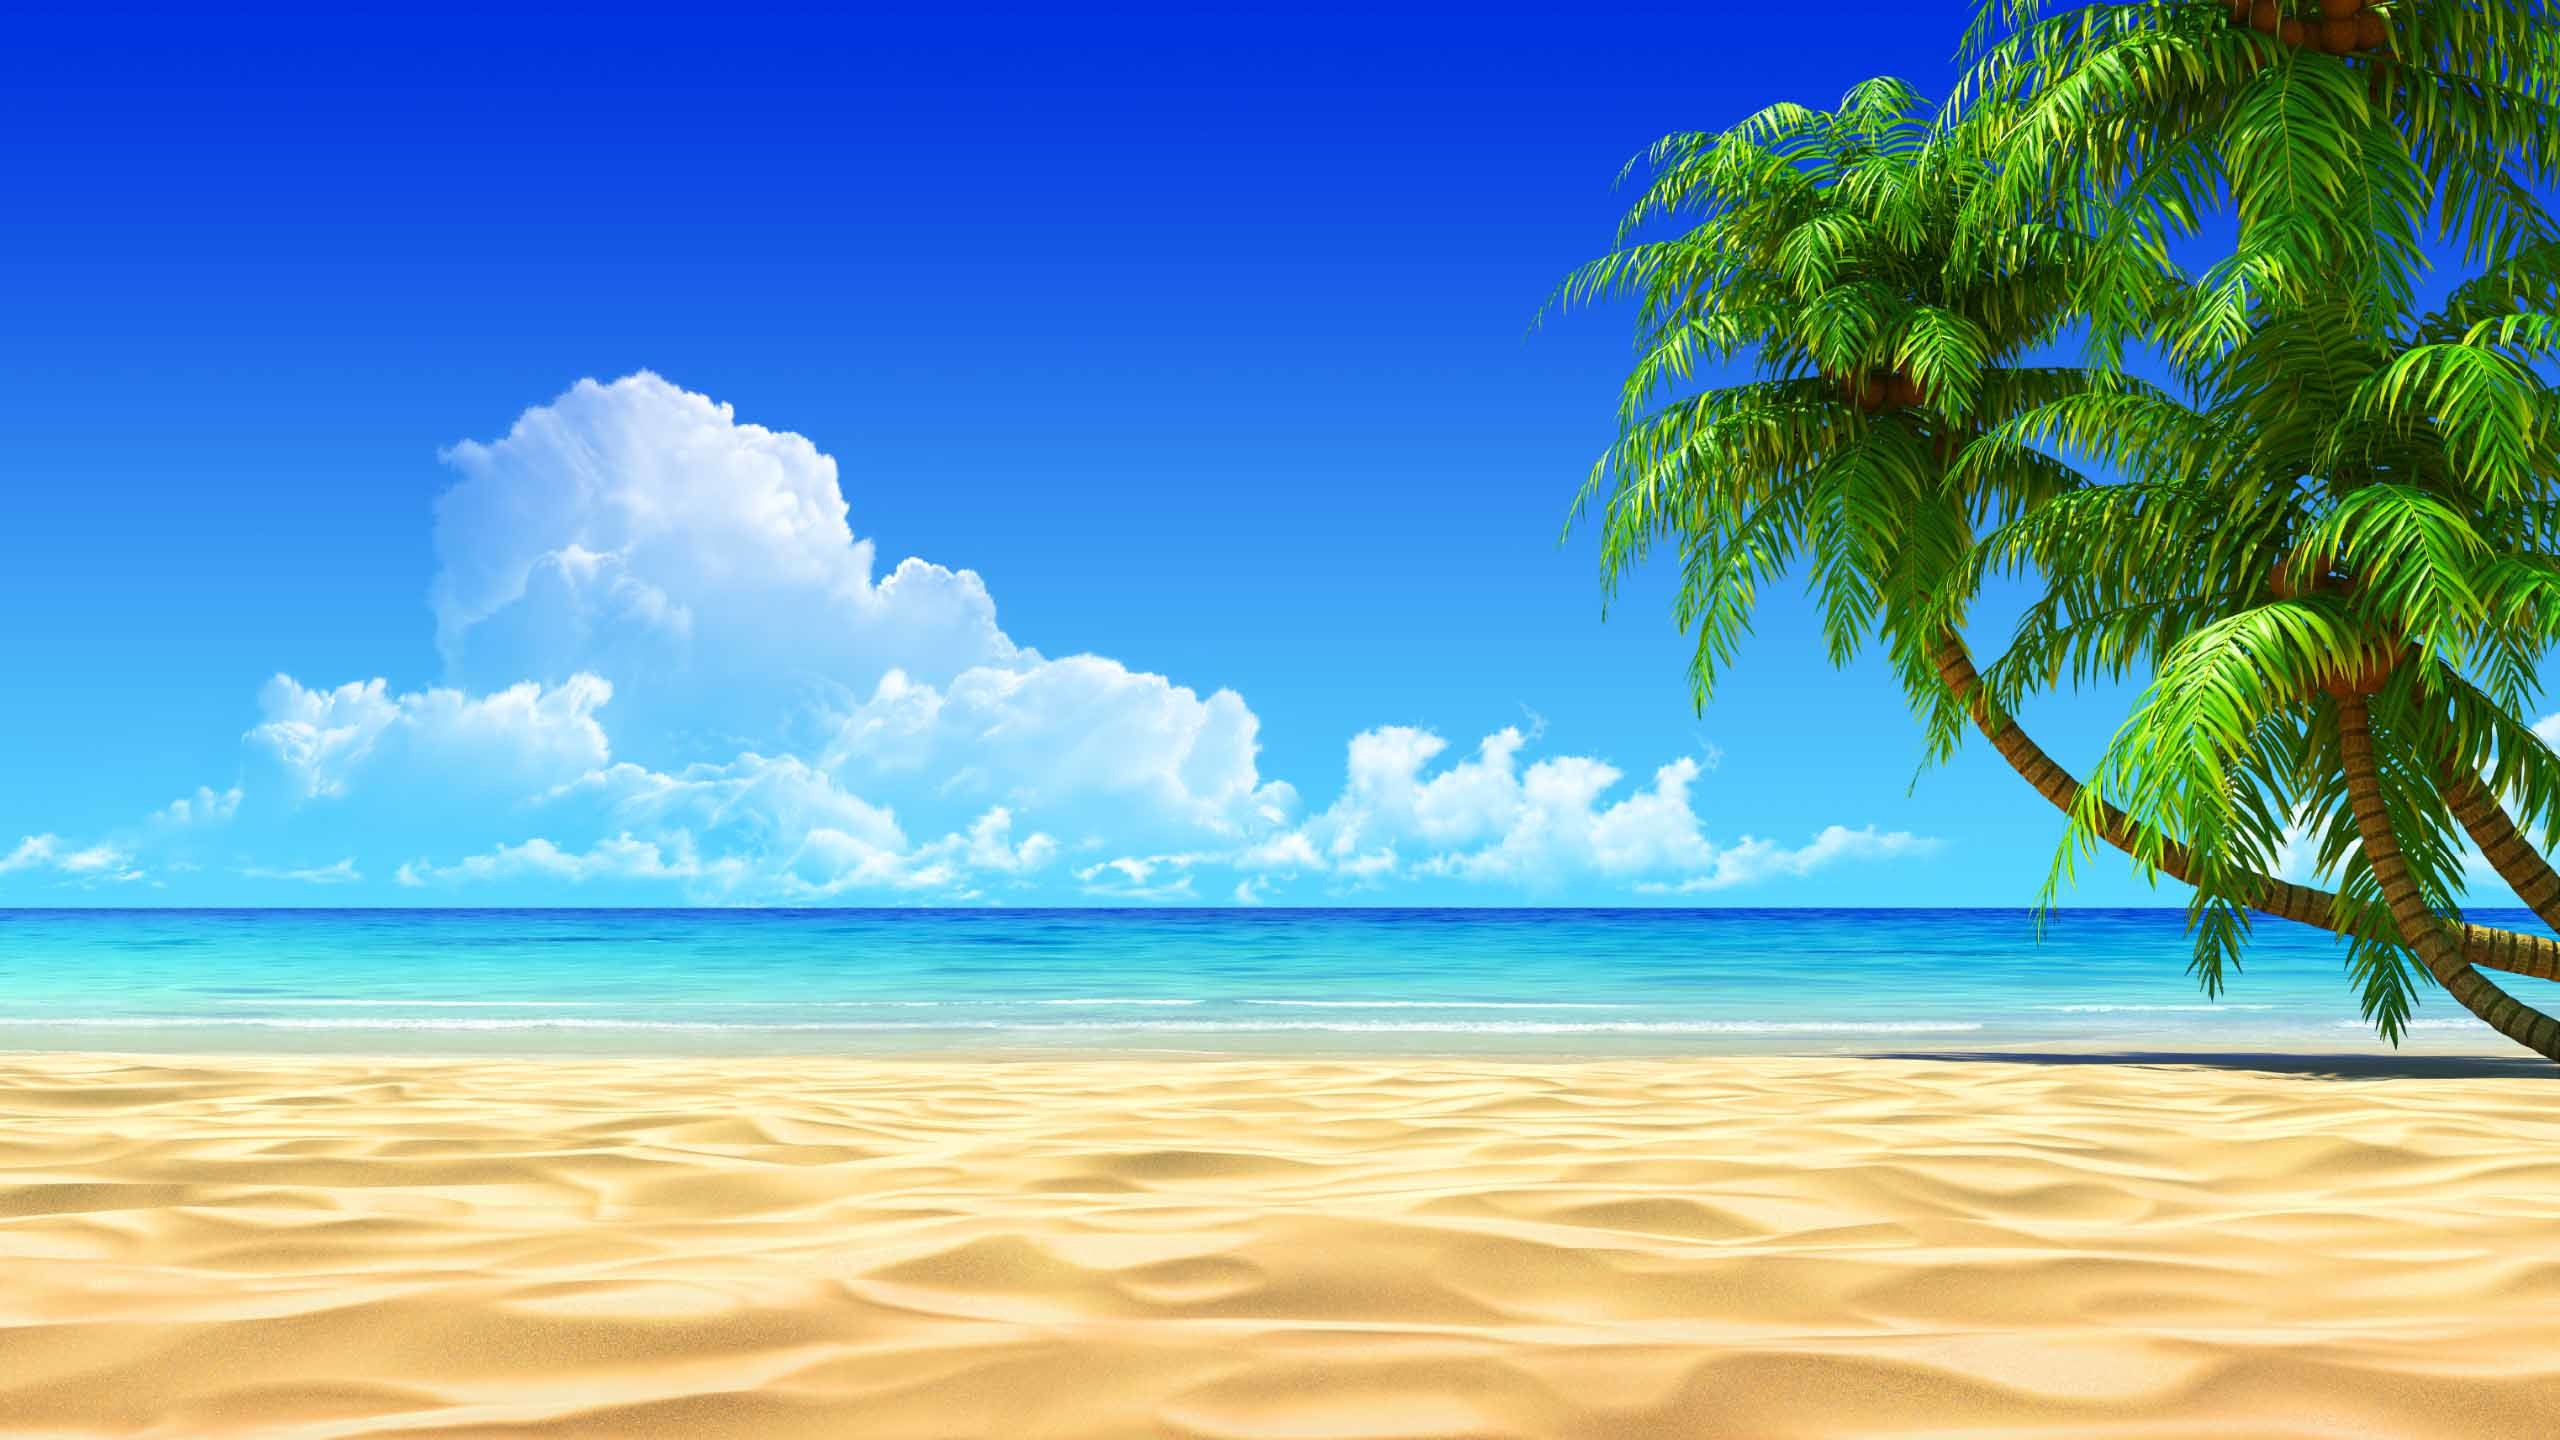 tropical beach wallpaper desktop ·①